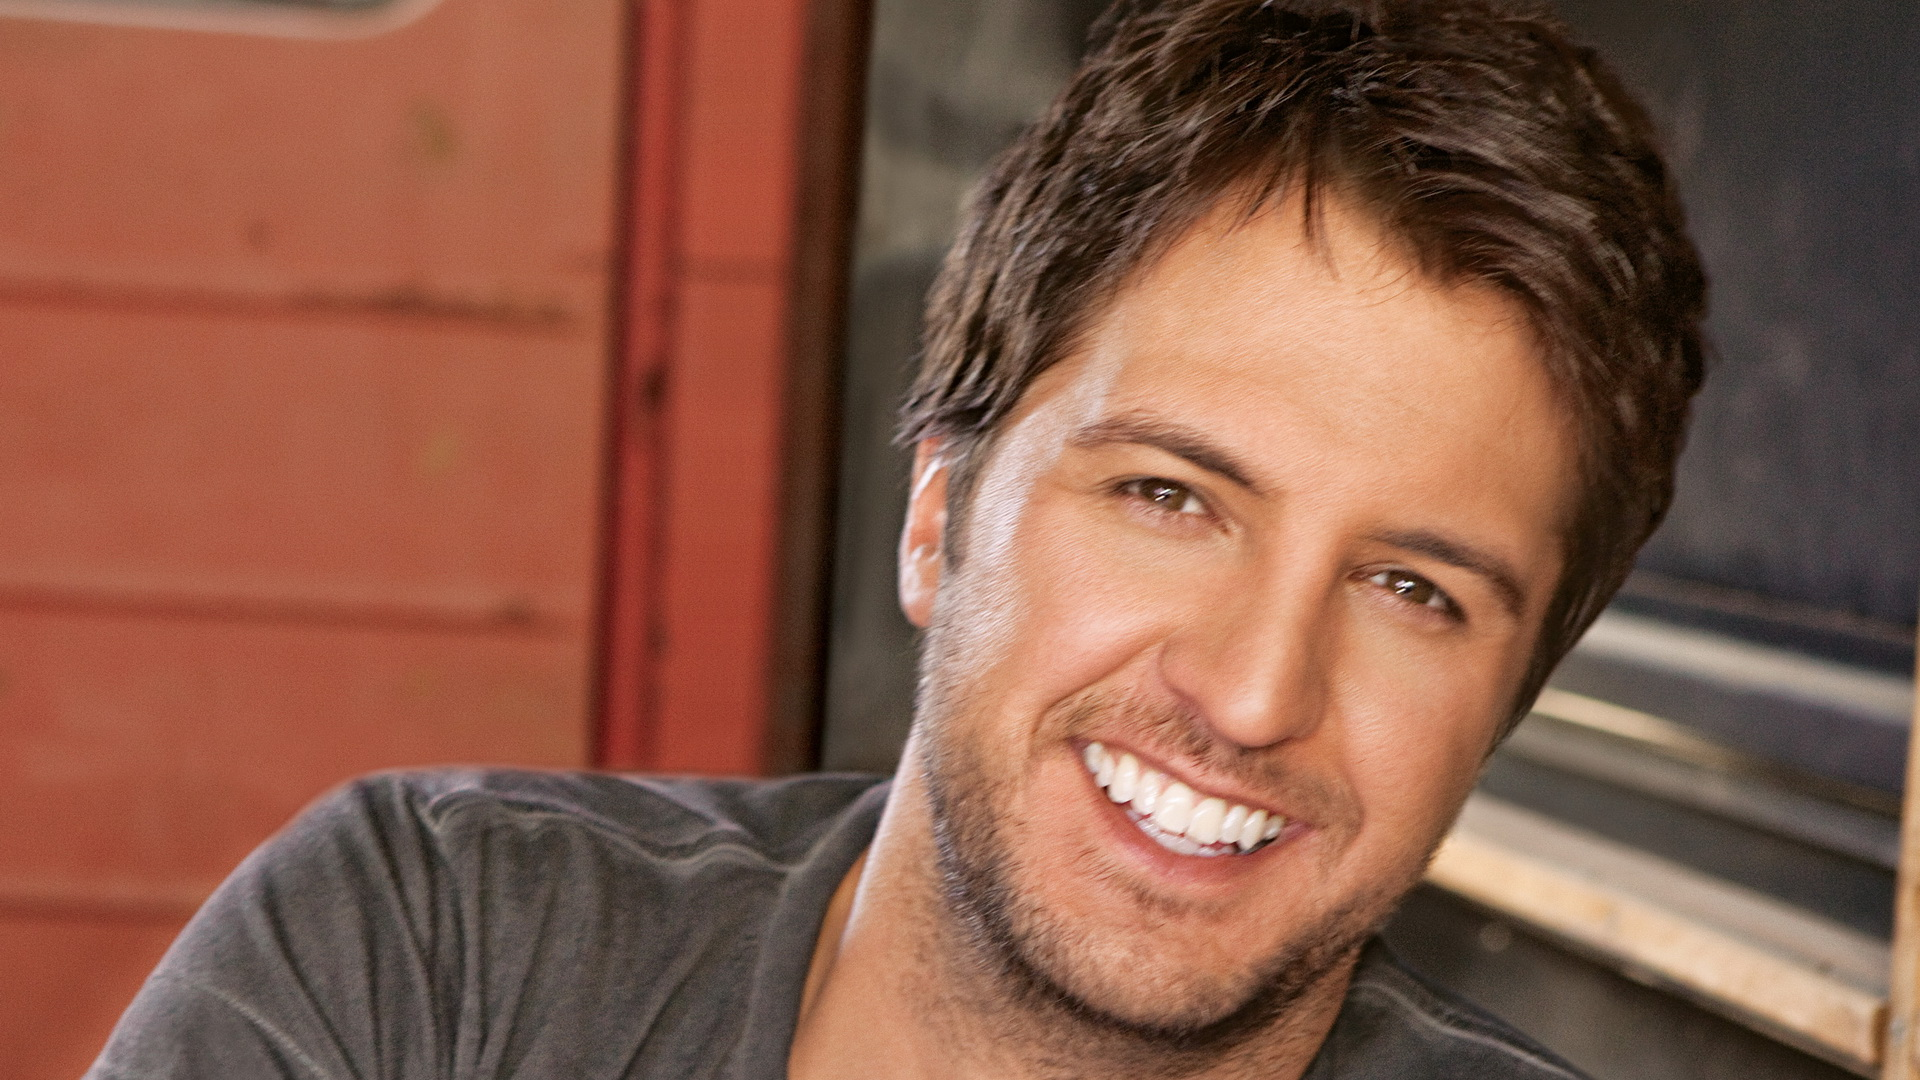 Luke Bryan close up